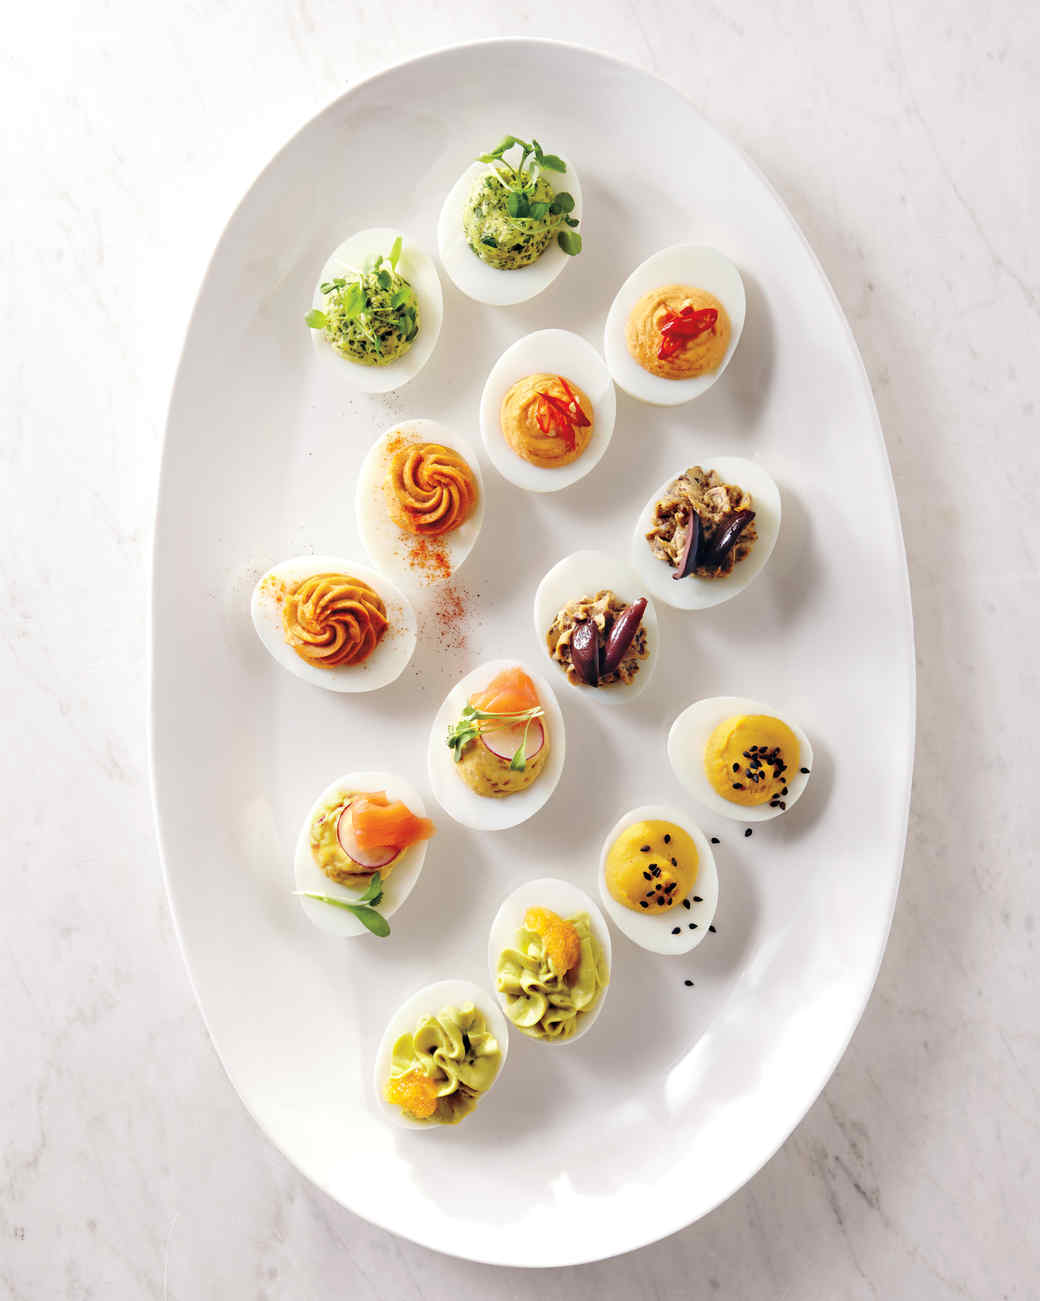 Our Definitive Deviled Eggs & 25 Delicious Ways to Use Up Leftover Hard-Boiled Eggs | Martha Stewart